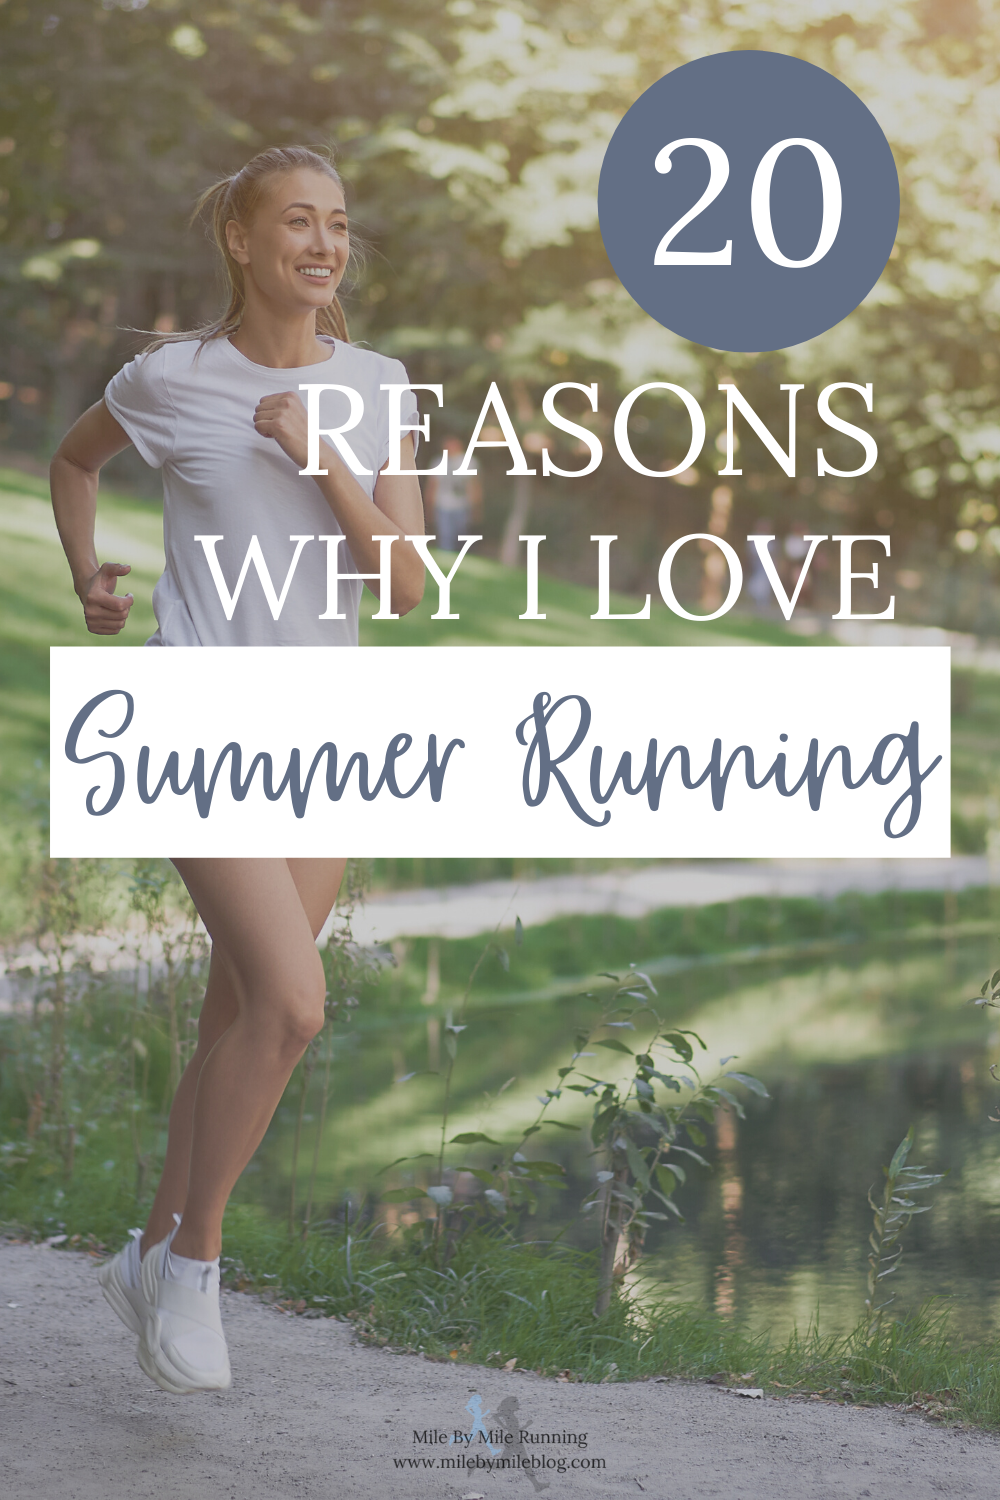 As much as I love summer running, I definitely do my share of complaining as the months go on. I thought this was a good time to highlight all the reasons why I love summer running. I plan to look back of this when I'm struggling with summer running. Maybe you can do the same!